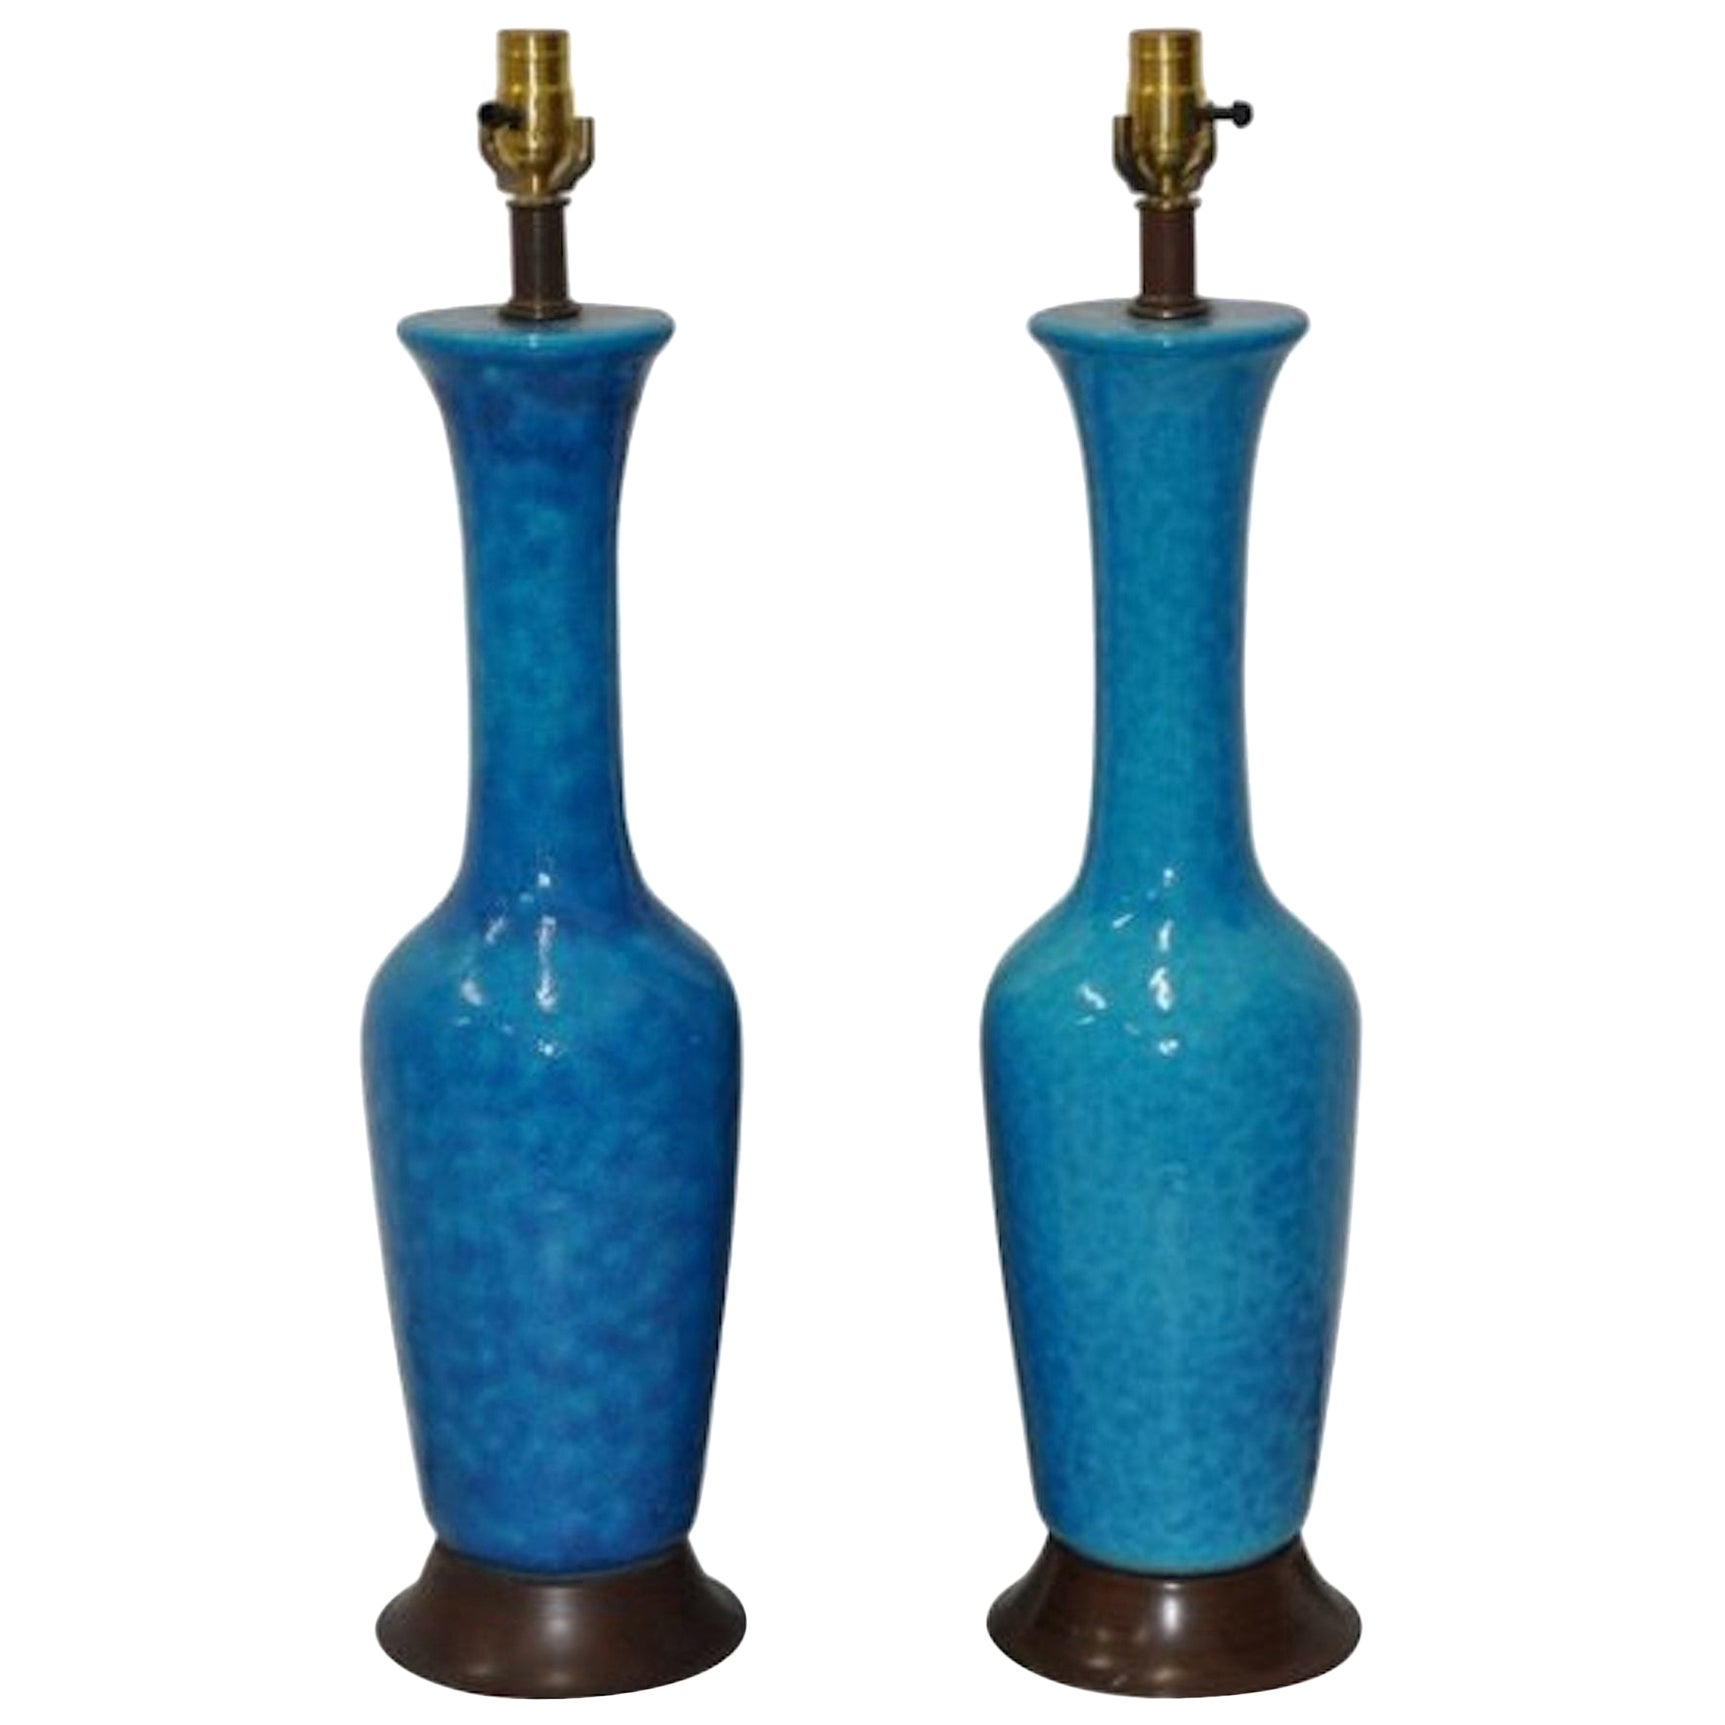 Pair of Phil Mar Glazed Pottery Table Lamps, circa 1950s